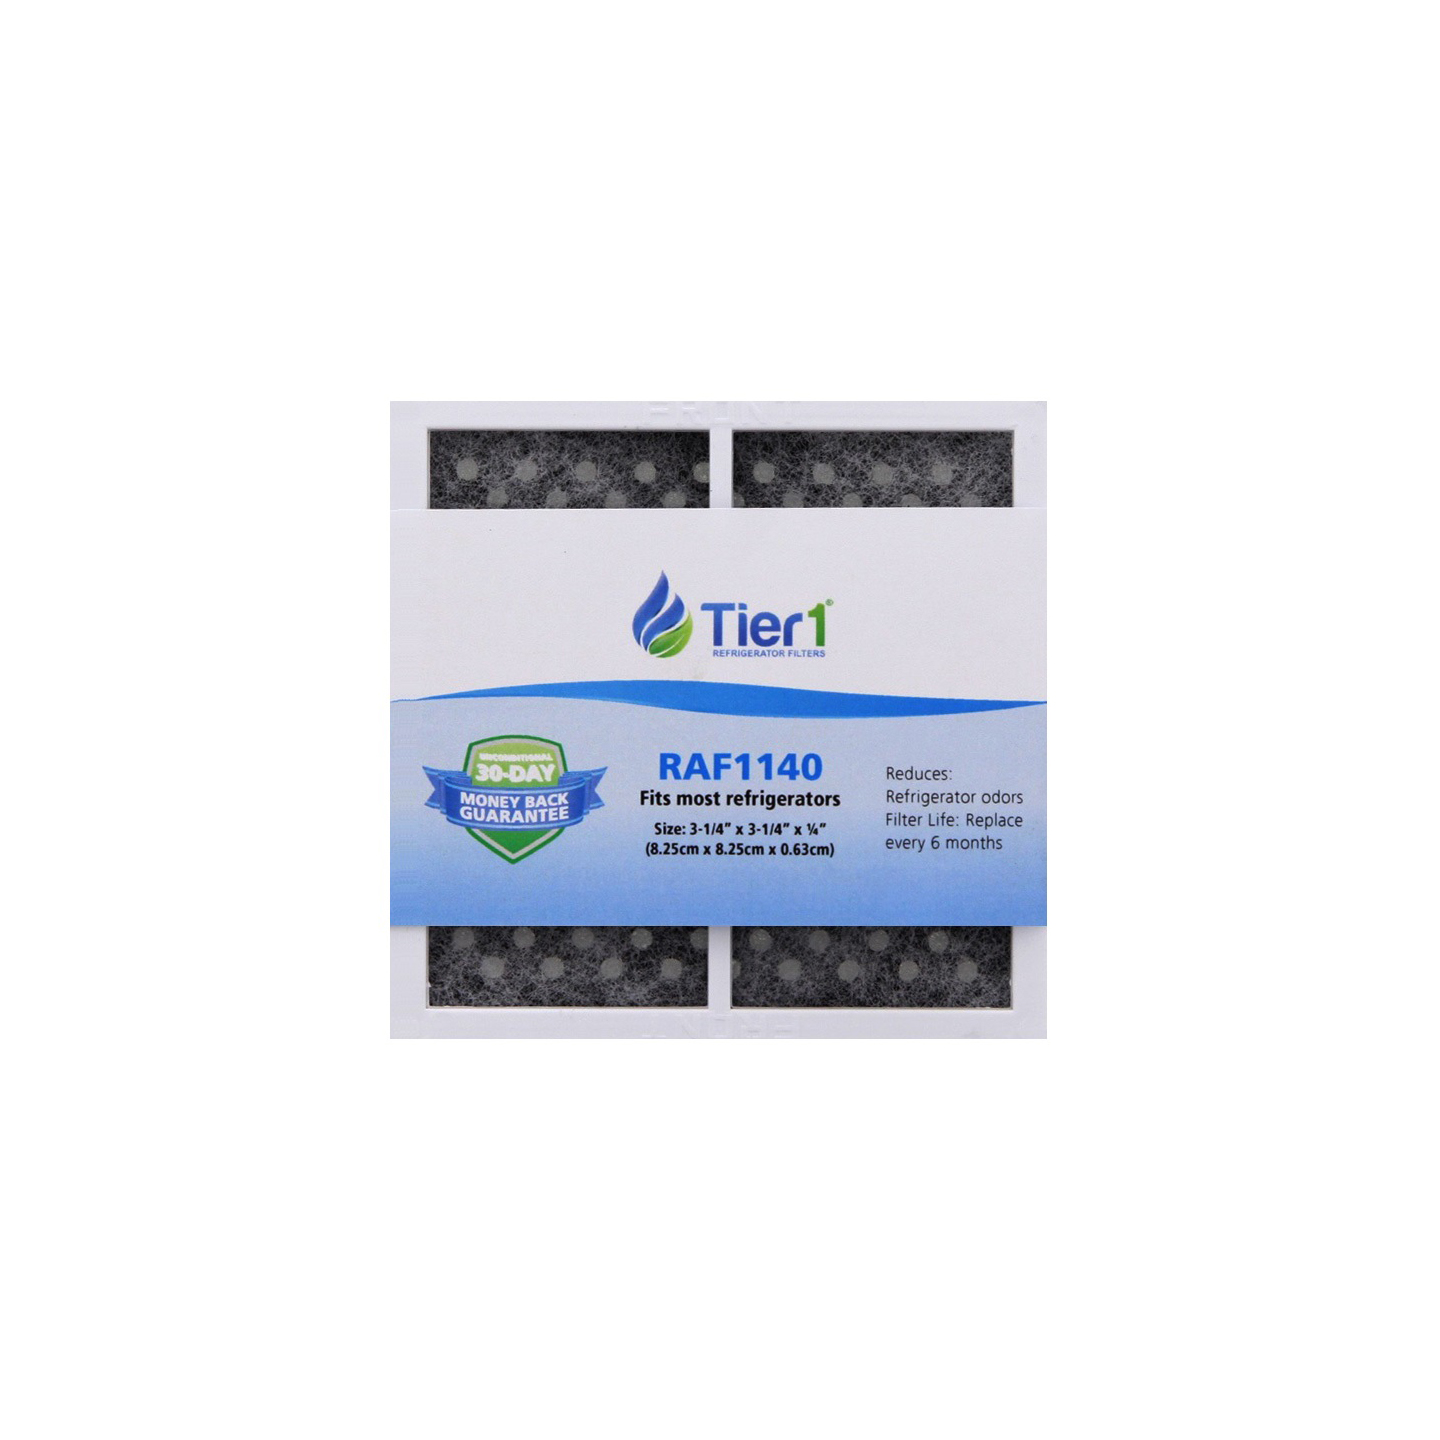 Tier1 RAF1140 Refrigerator Air Filter Replacement (LG LT120F Comparable) TIER1-RAF1140